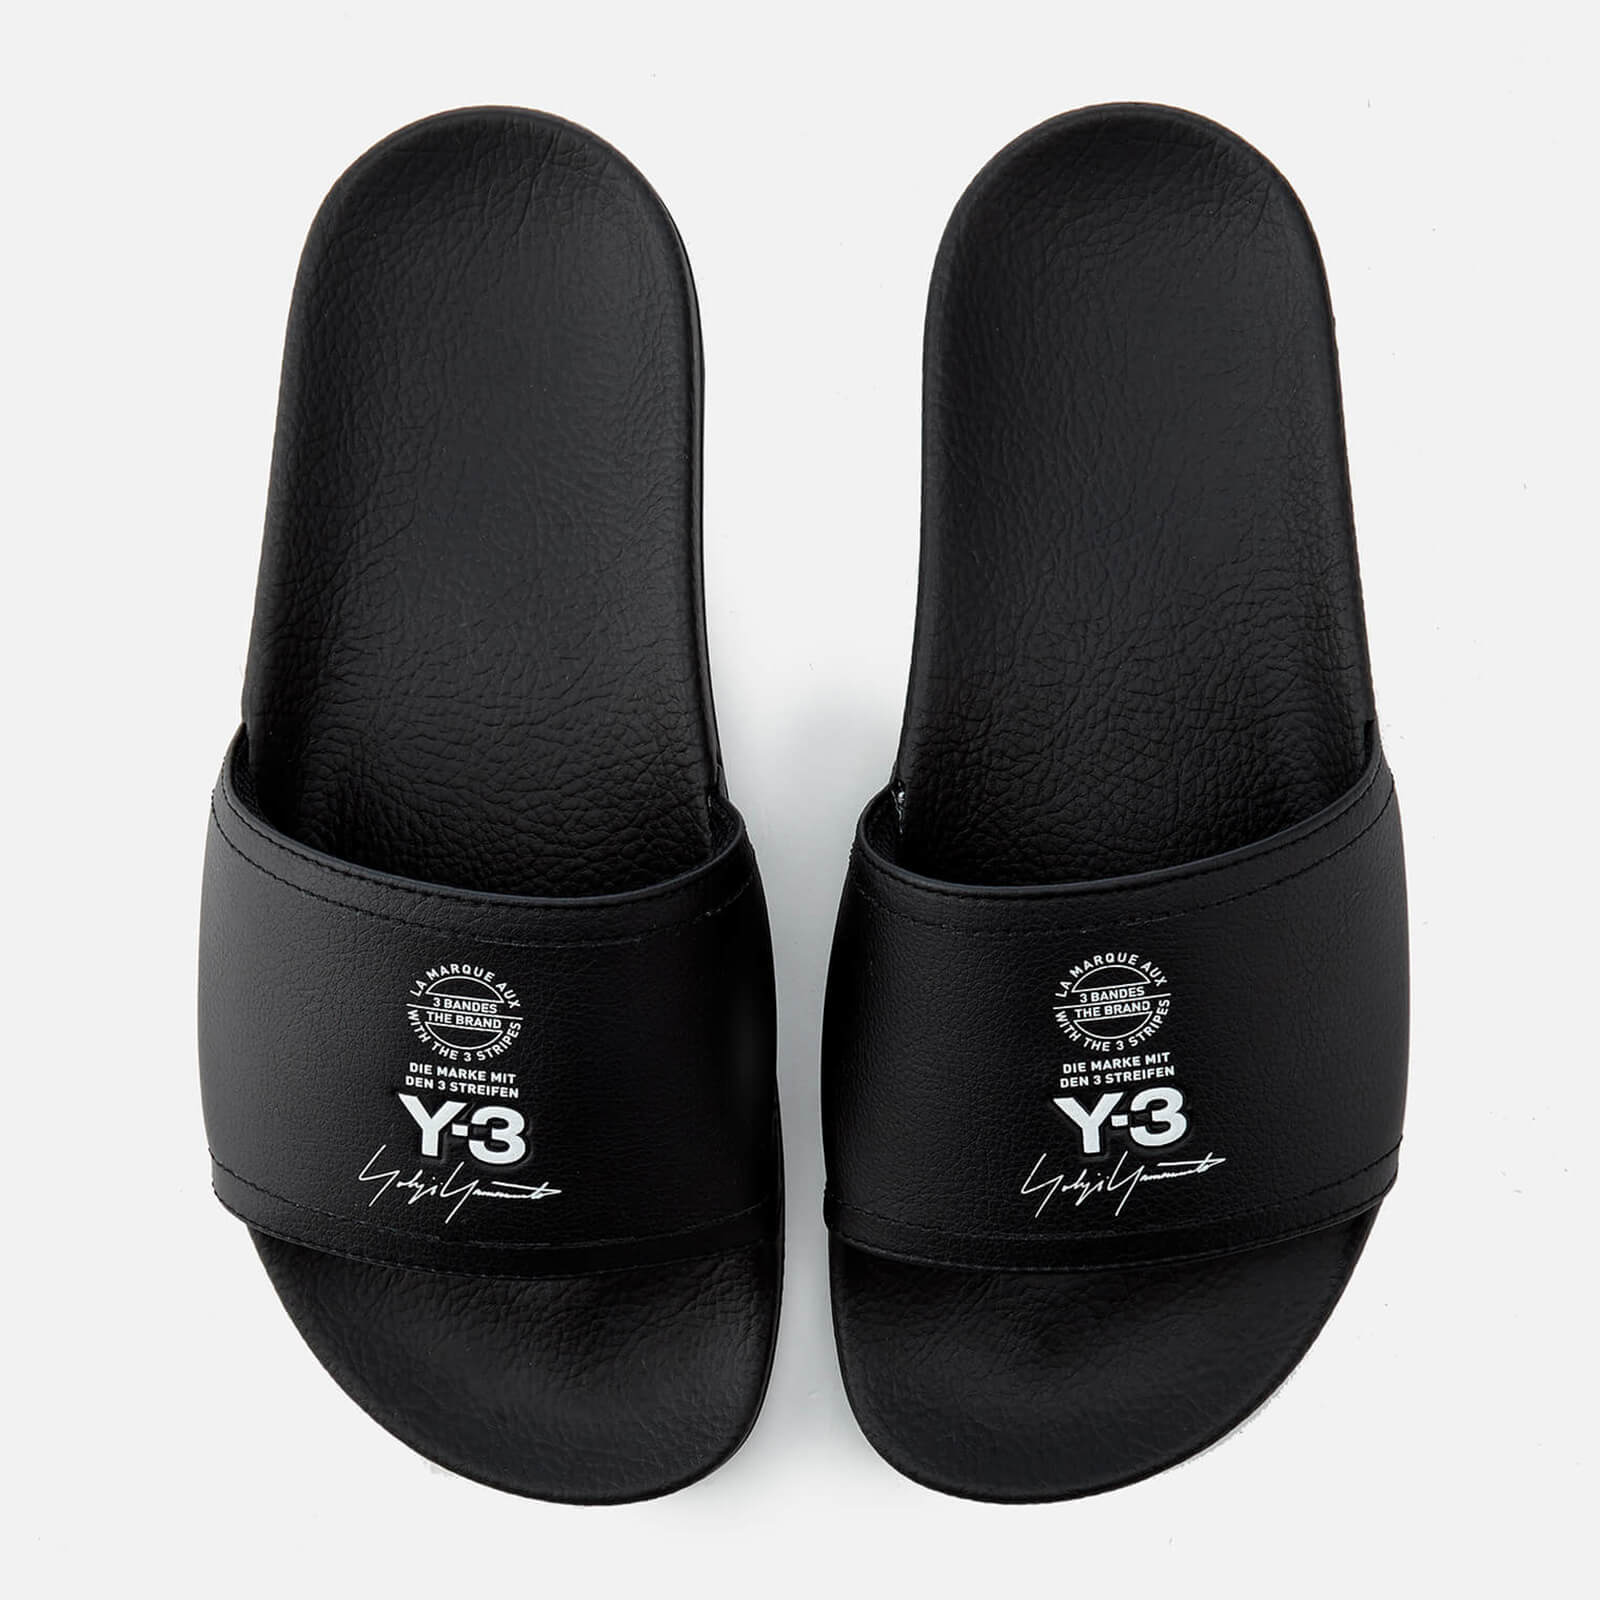 041573934 Y-3 Adilette Slides - Black - Free UK Delivery over £50